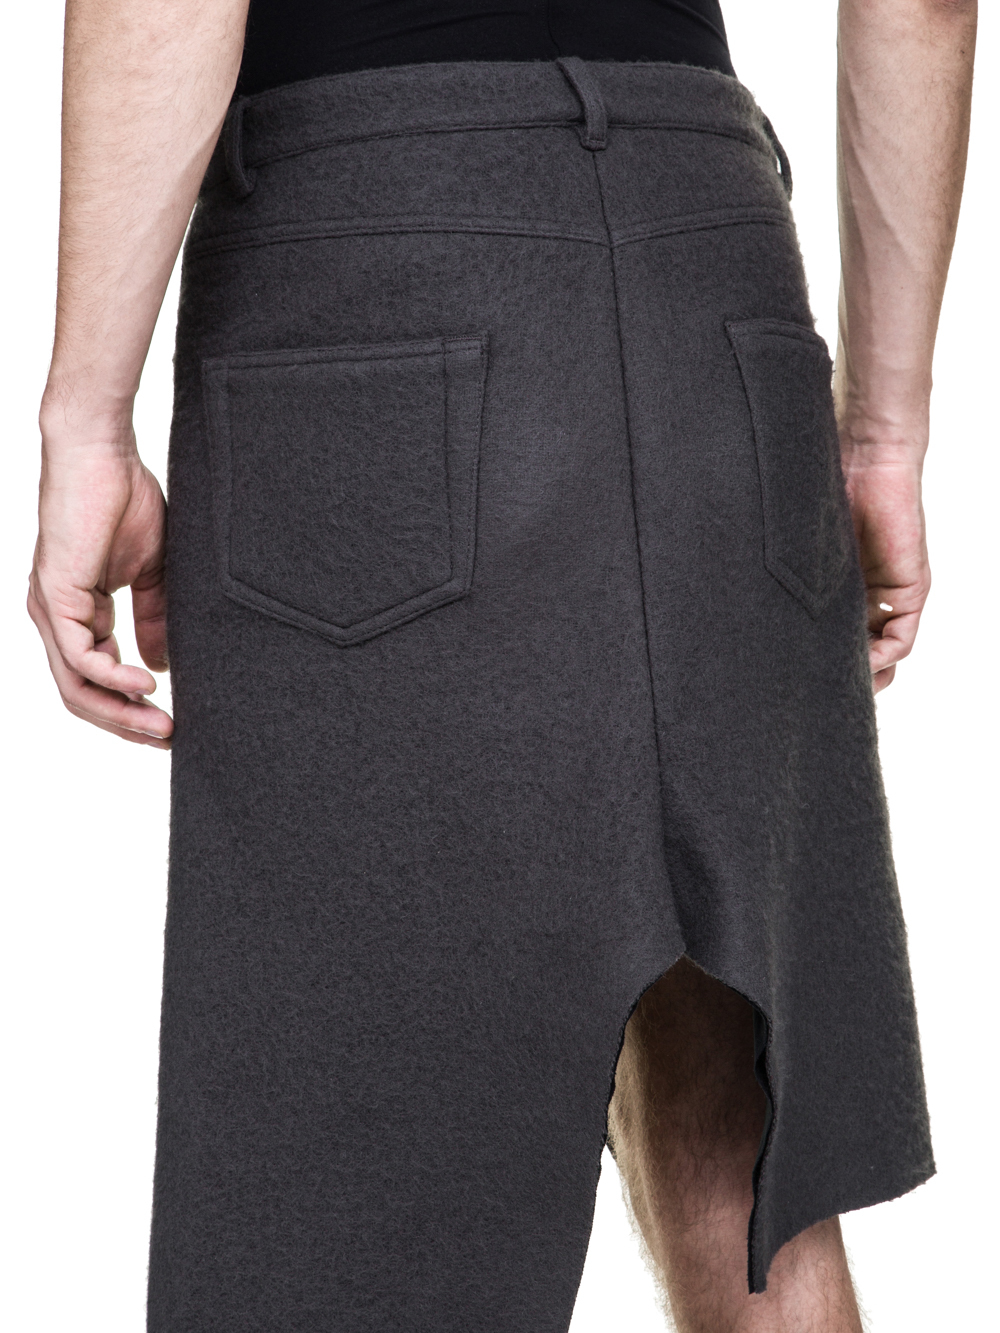 RICK OWENS OFF-THE-RUNWAY COLLAPSE SKIRT IN DARKDUST GREY BOILED WOOL